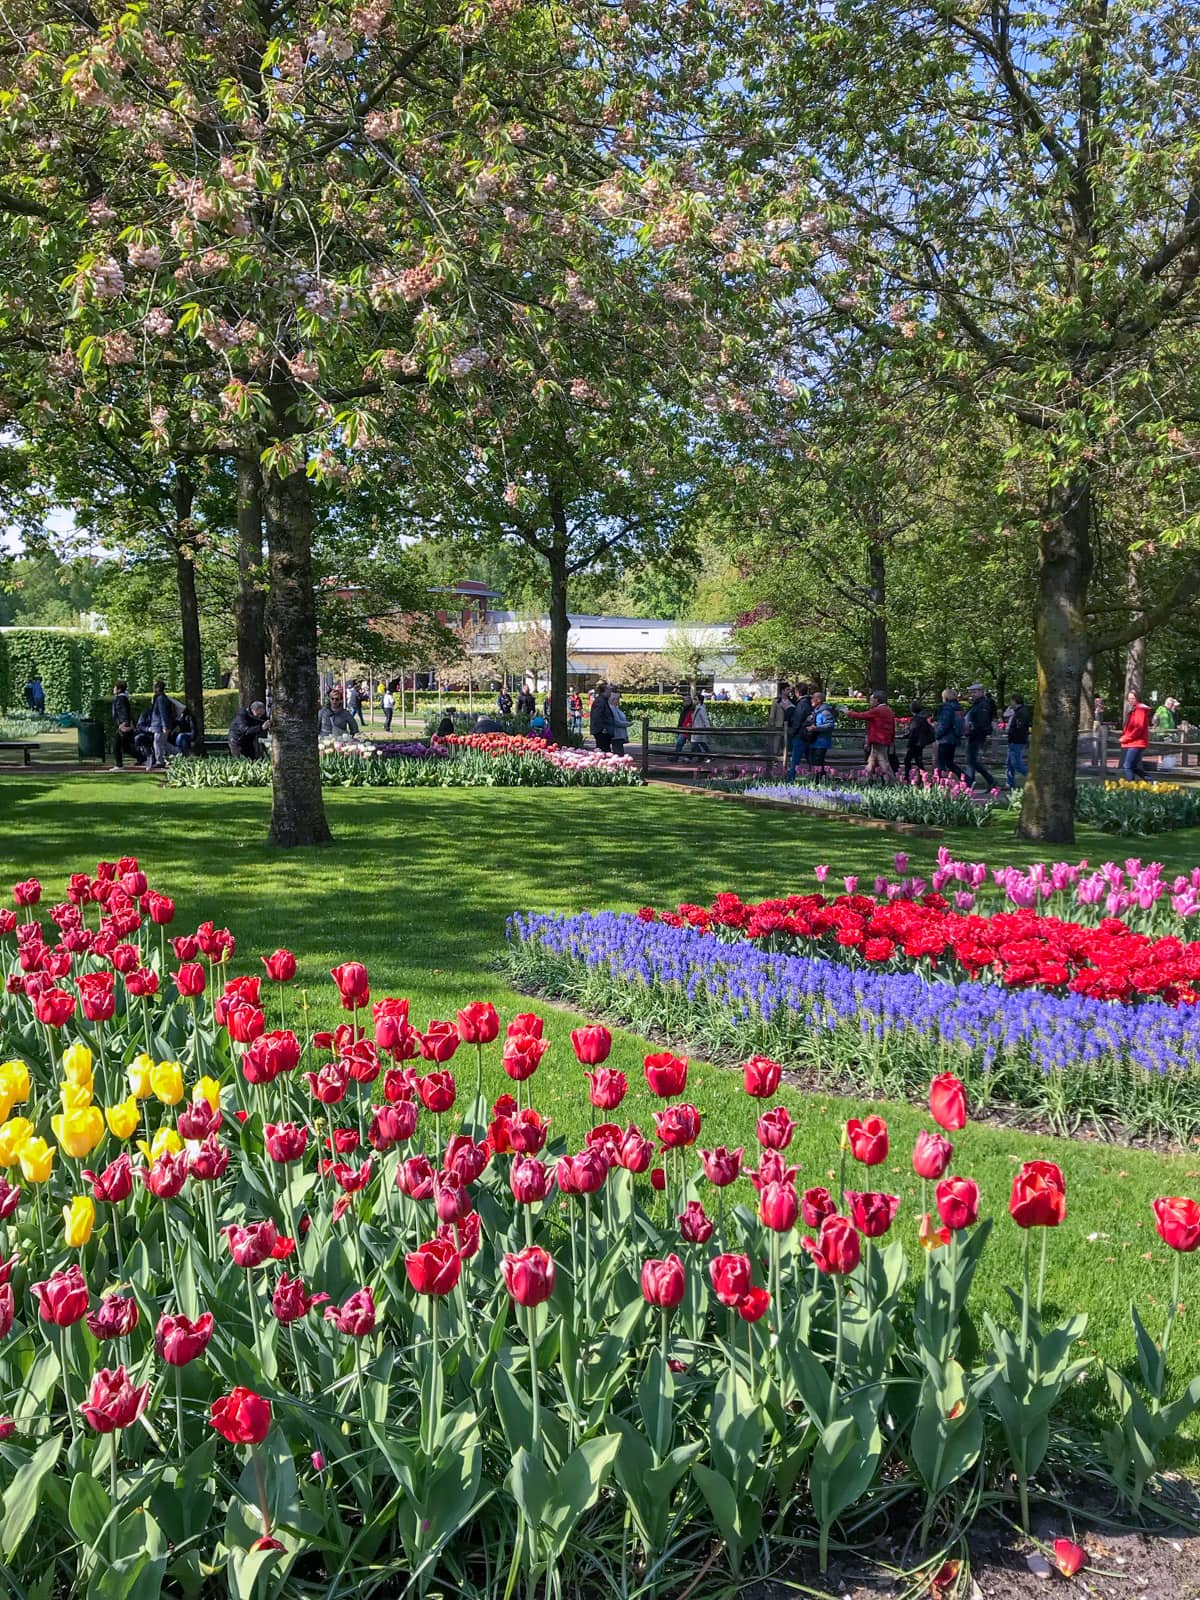 The inside of a park with many rows of tulips planted, in the foreground red and pink, and in the background purple, red, and pink. There are trees in the background and many people observing the tulips